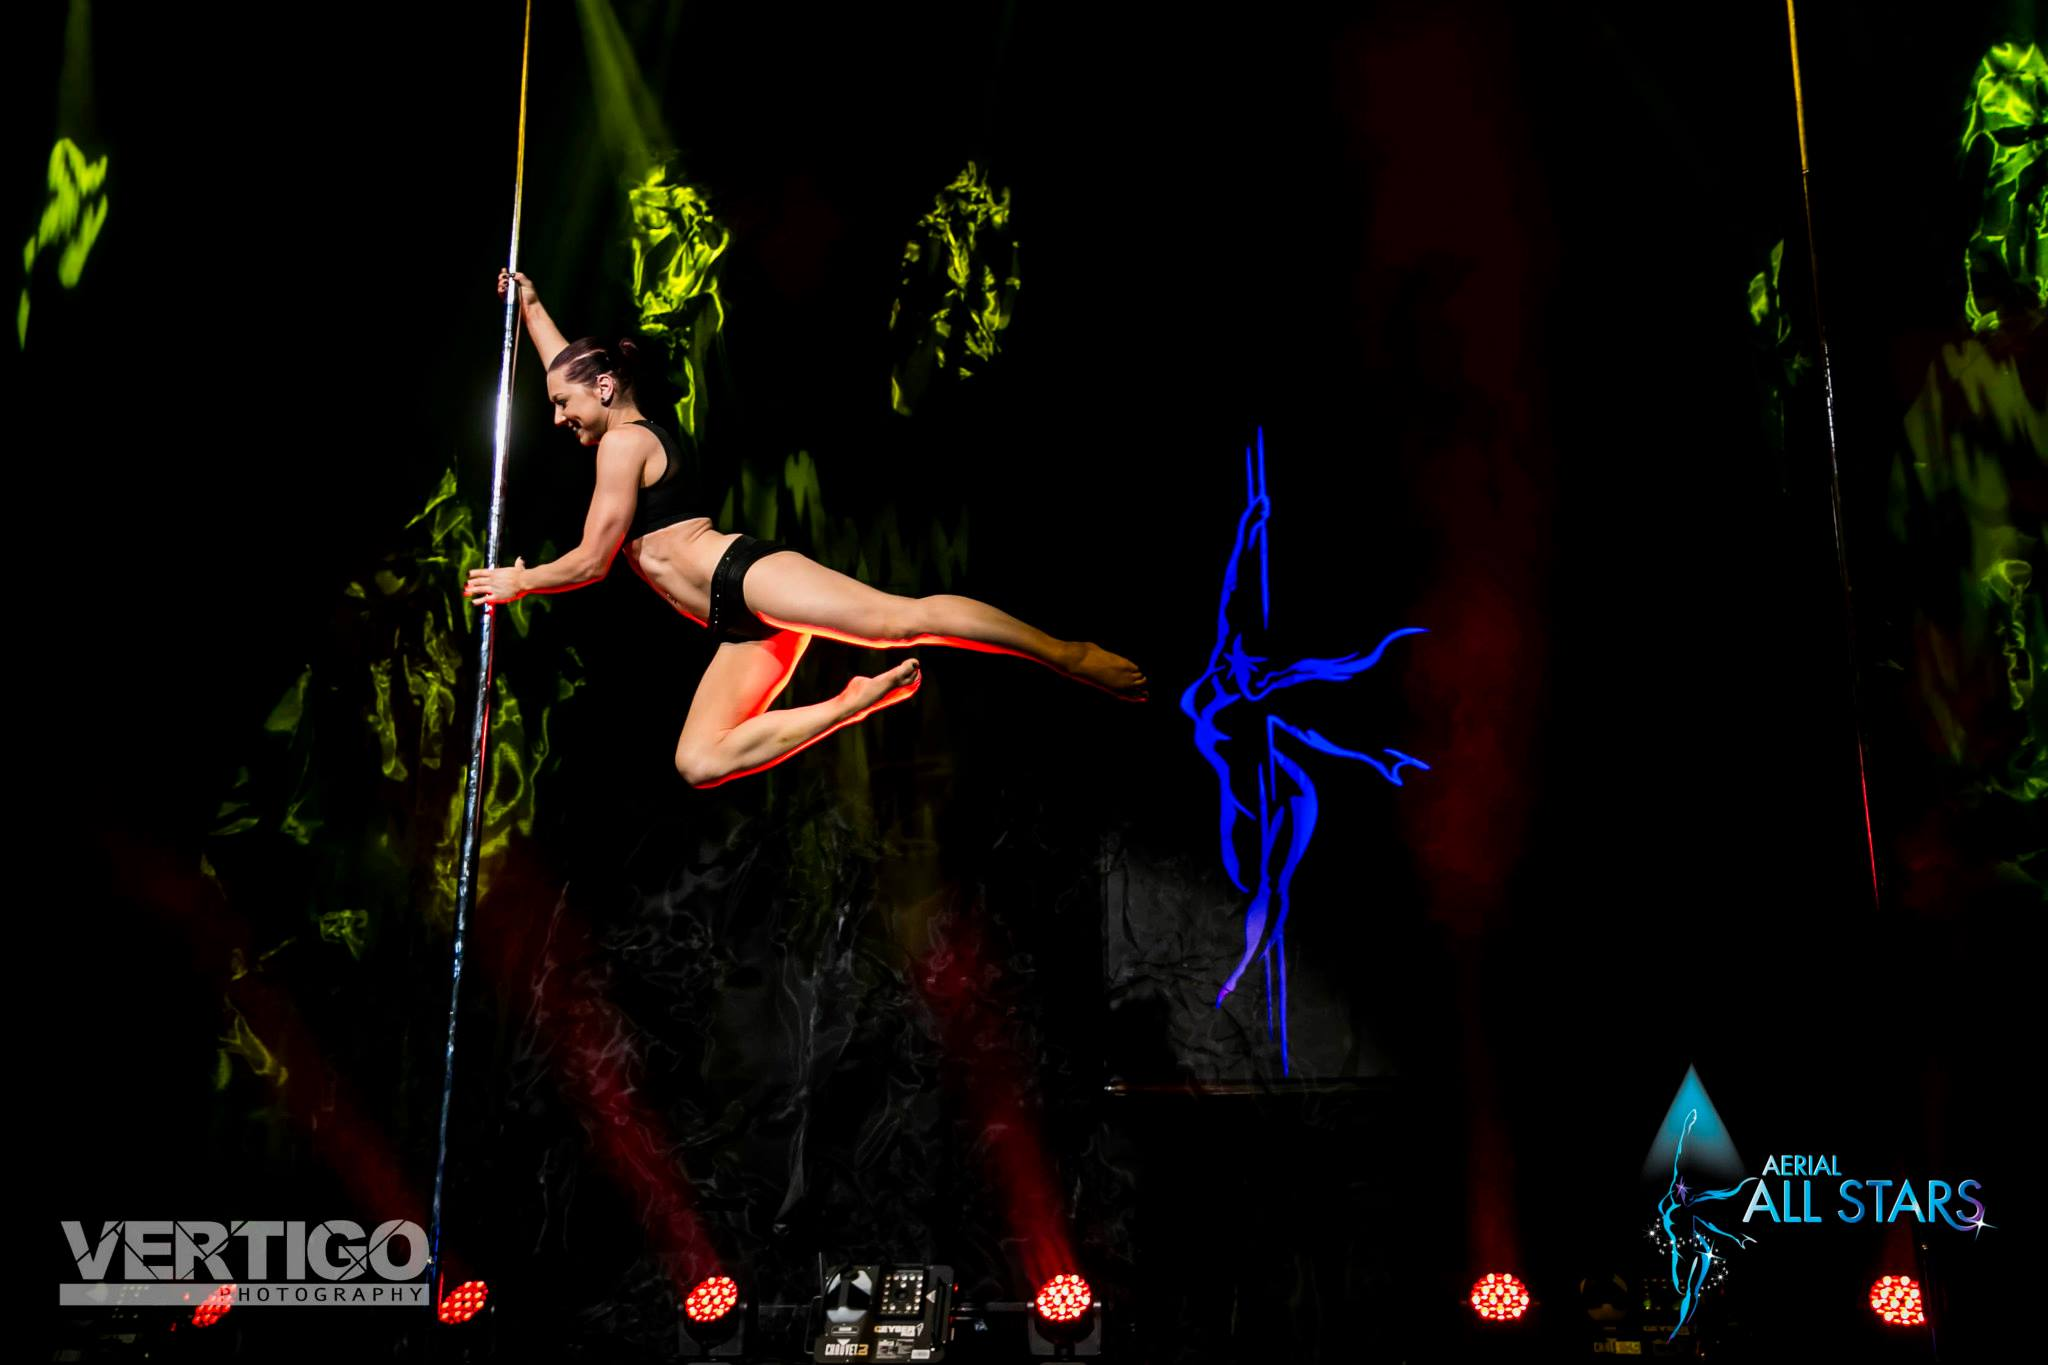 Megan Blyszak Pole Dancer Rarr designs